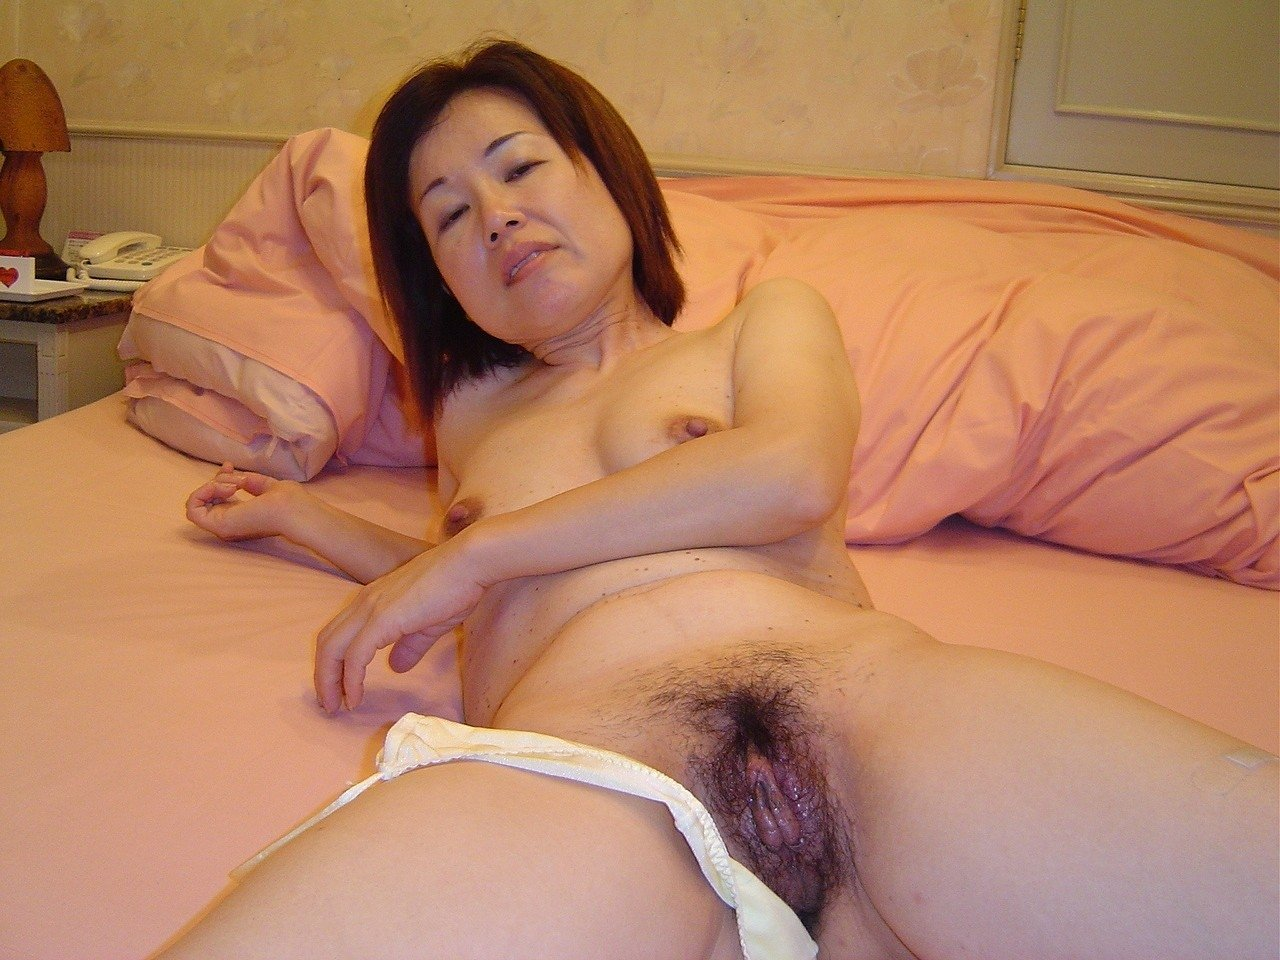 Mature asians women